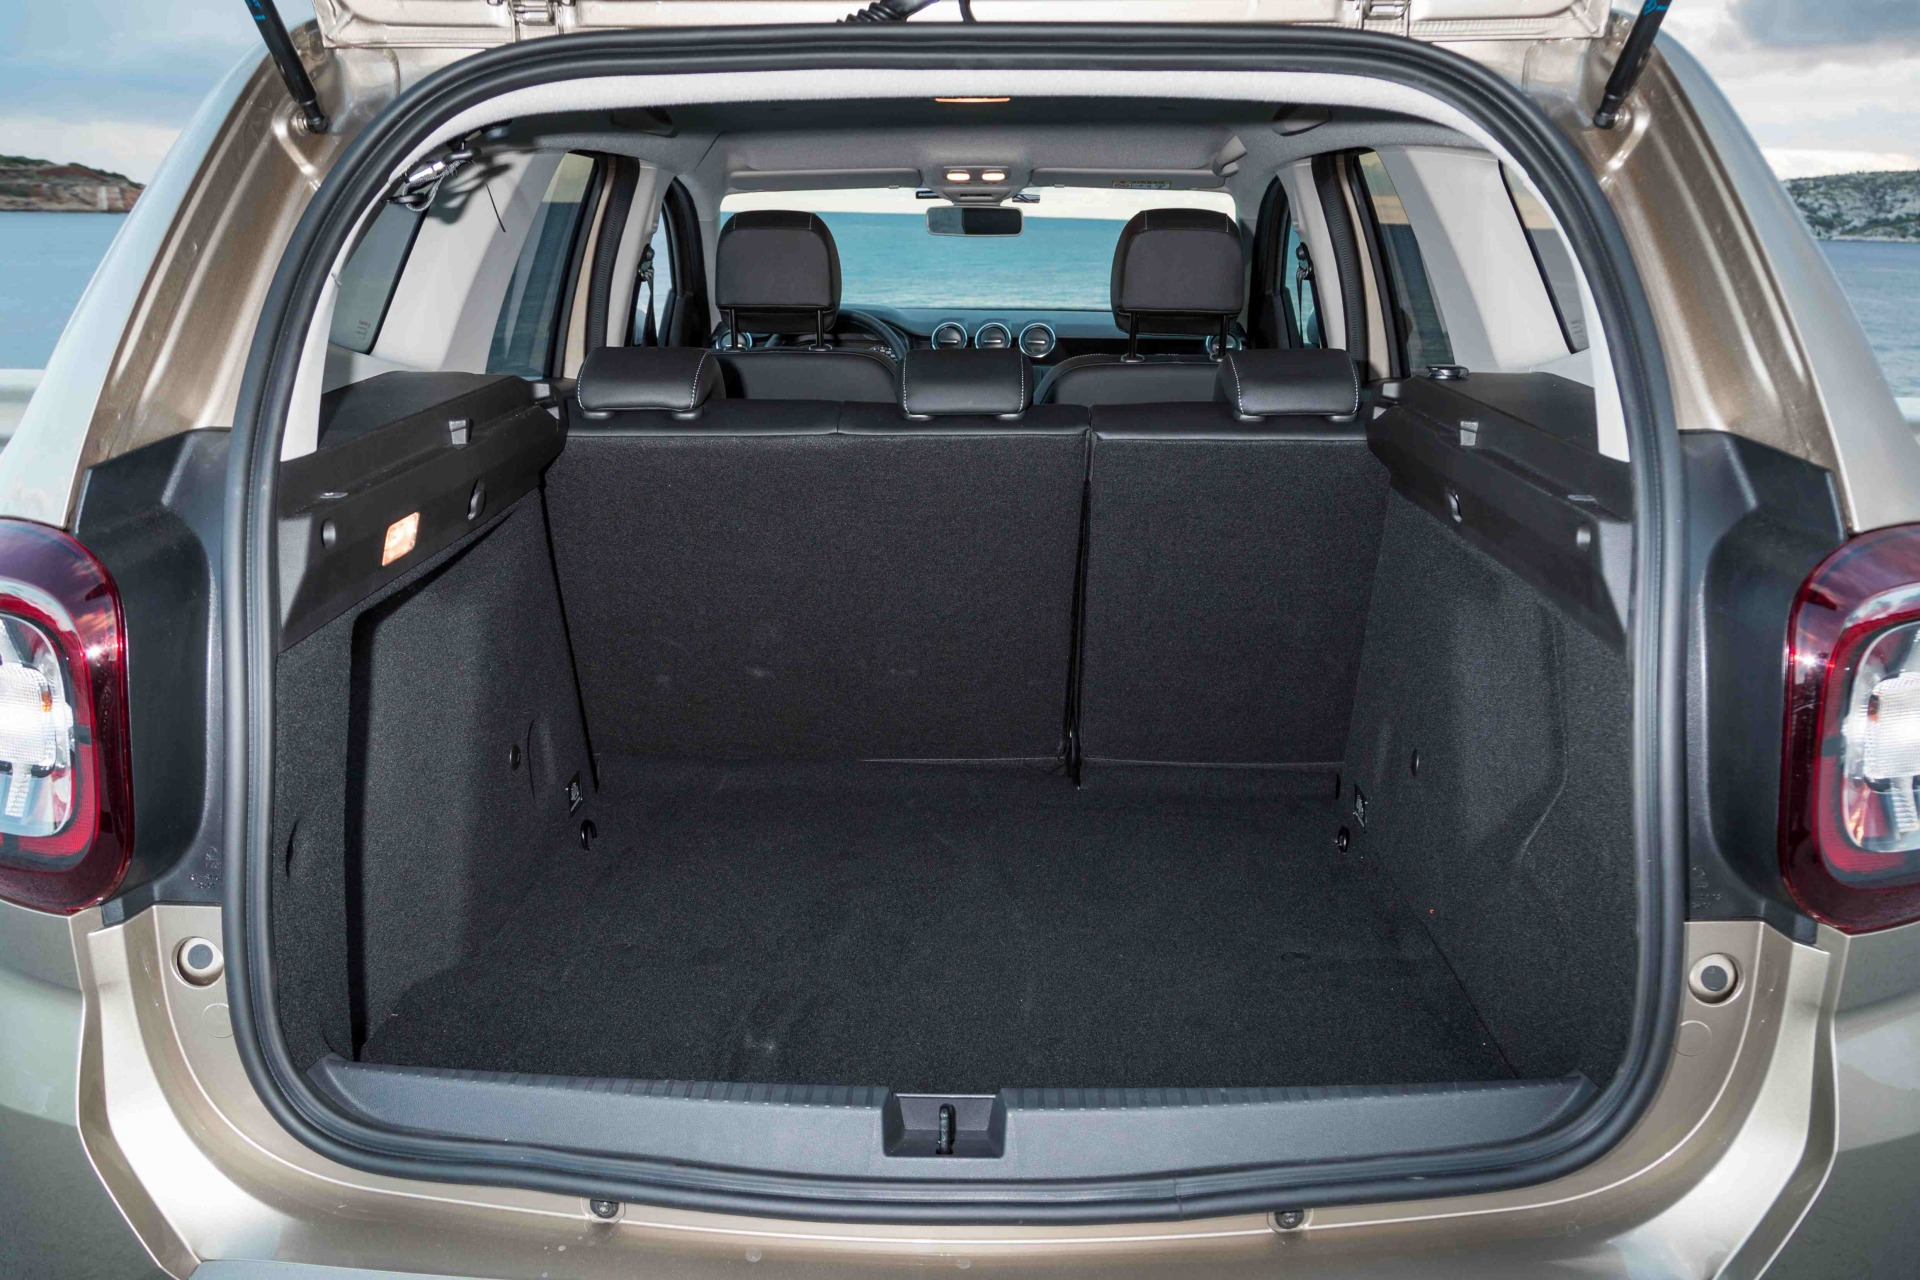 essai dacia duster 2018 notre avis sur le nouveau duster dci 110 photo 33 l 39 argus. Black Bedroom Furniture Sets. Home Design Ideas